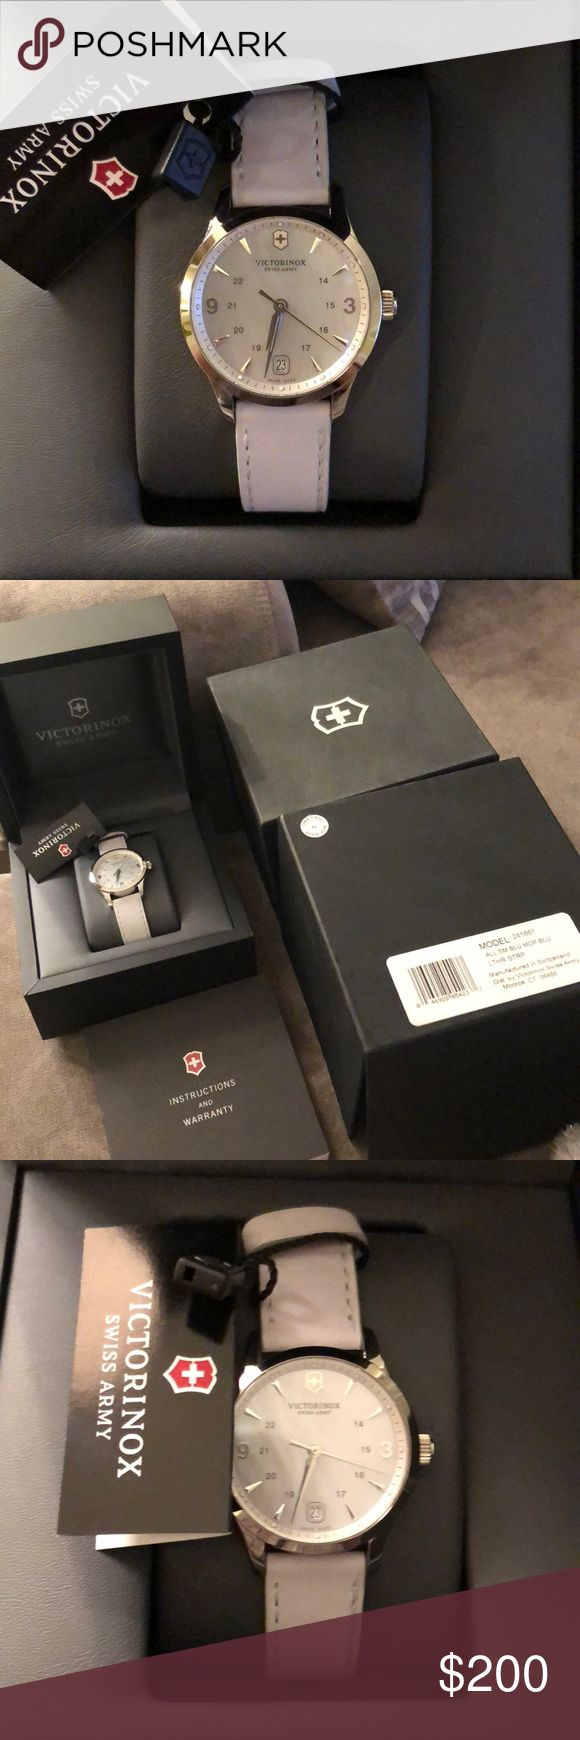 "Victorinox Swiss Army Women's Watch ""Alliance"" Mother of Pearl Dial Light Blue Leather Strap Swiss Quartz Watch See last picture for more info! Guaranteed Authentic! Beautiful Watch! Same watch with different straps selling for $495 on Swiss Army website  Hurry up and buy before I change my mind about selling!! 🙌🏼 Victorinox Accessories Watches"